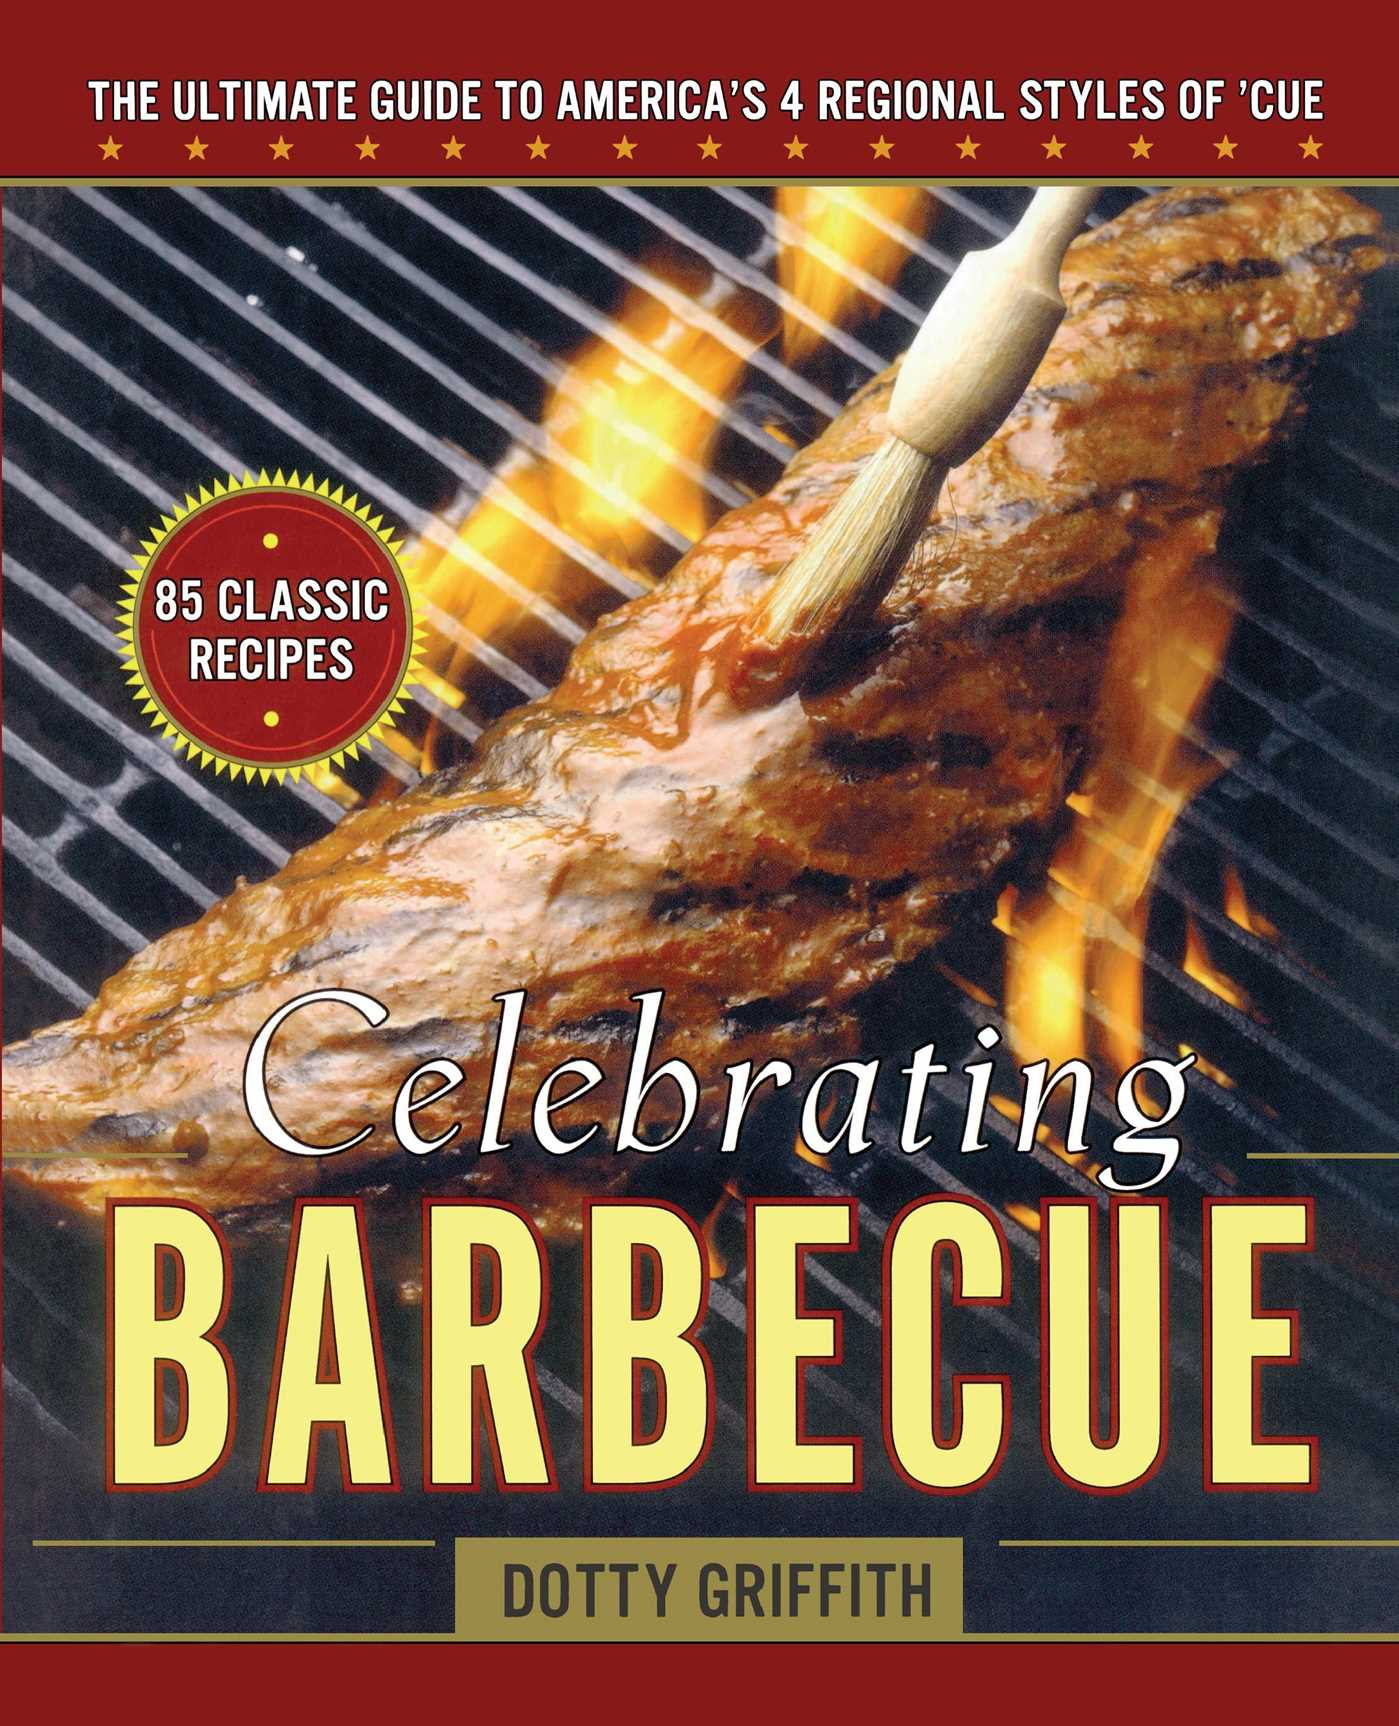 Celebrating-barbecue-9781451627640_hr